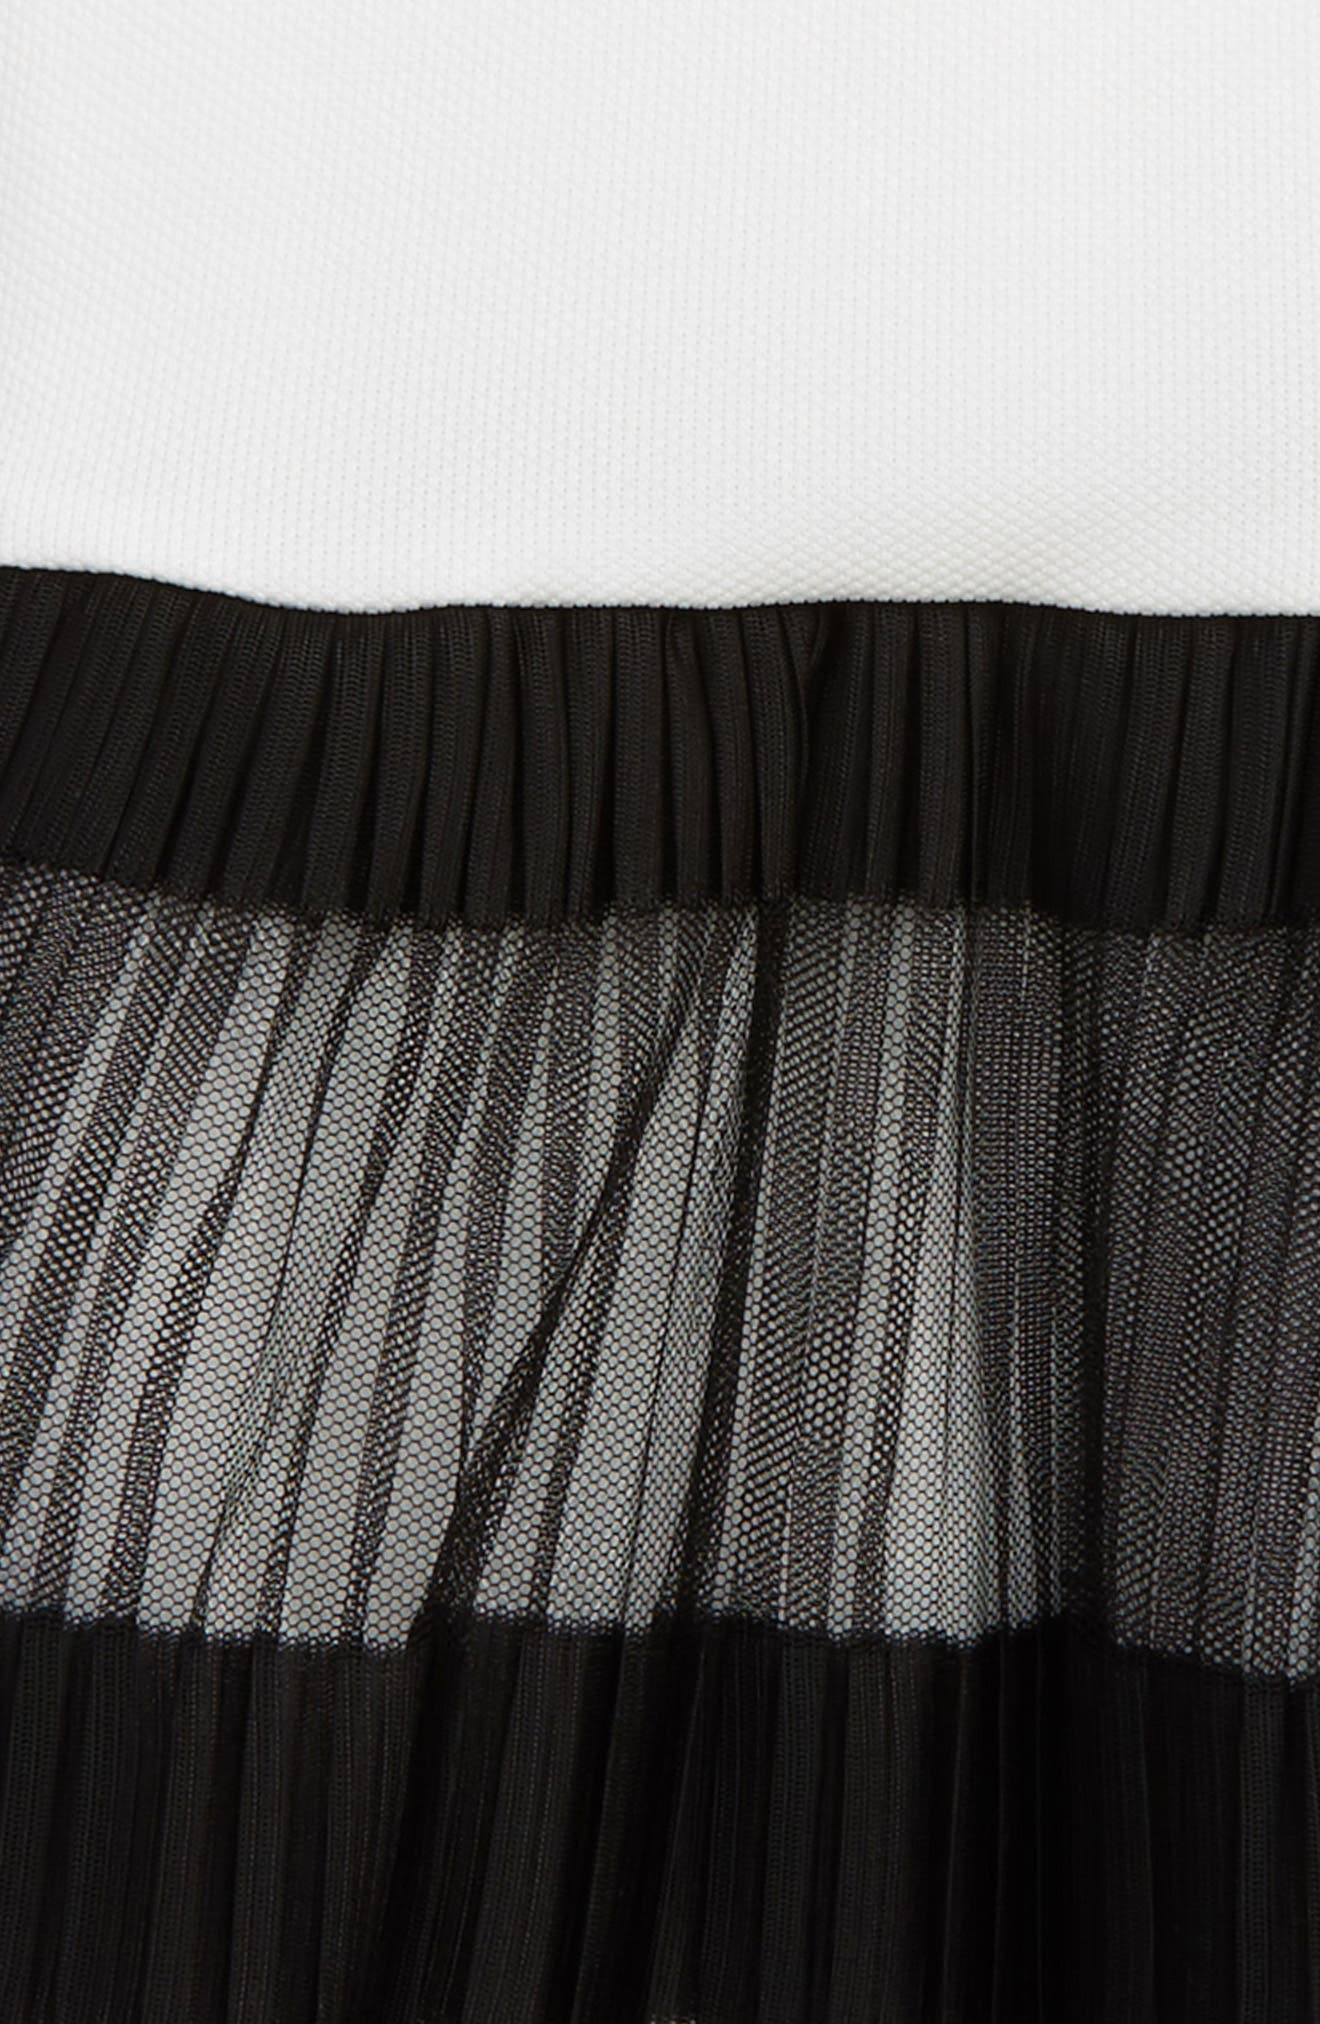 Accordion Pleated Dress,                             Alternate thumbnail 2, color,                             001